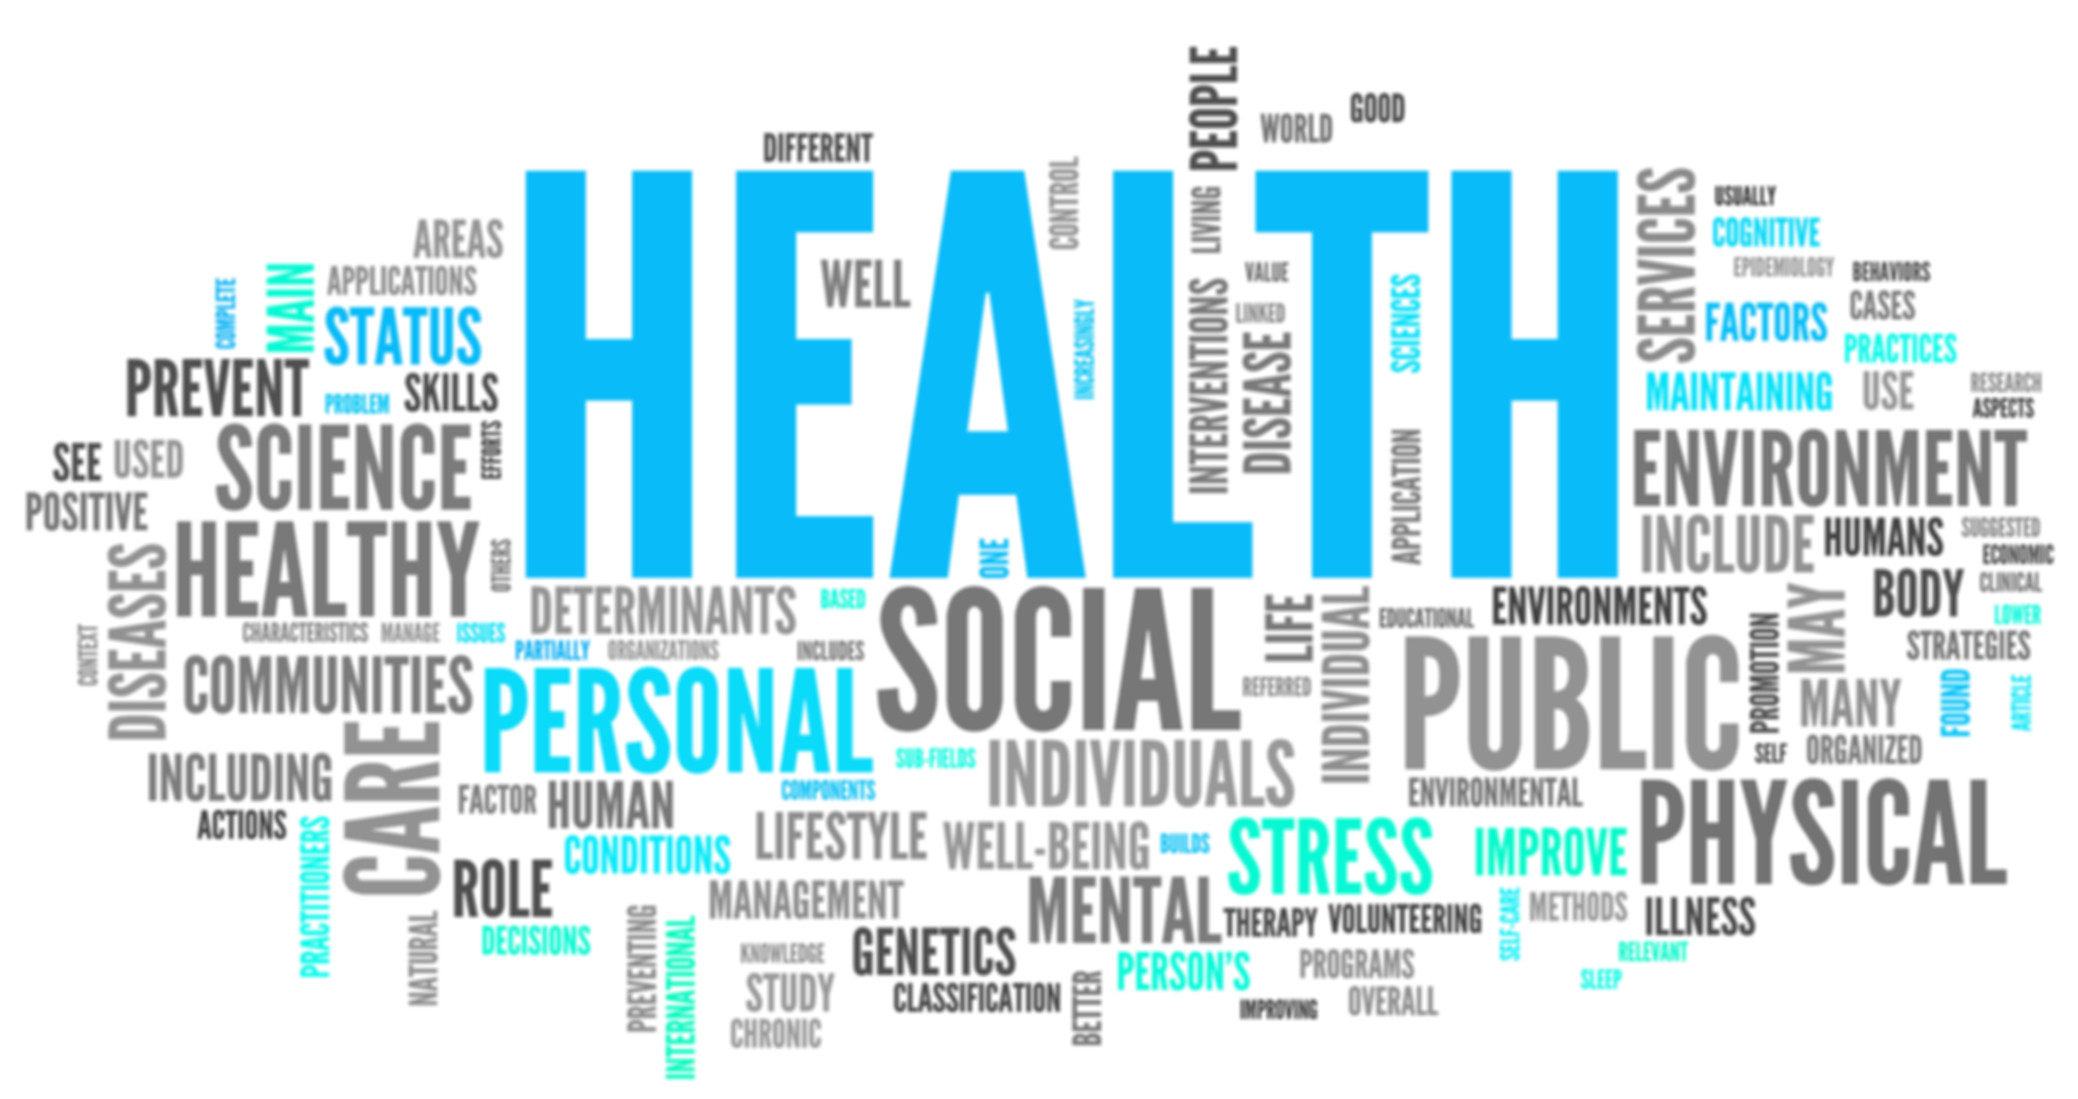 Health_word cloud.jpg